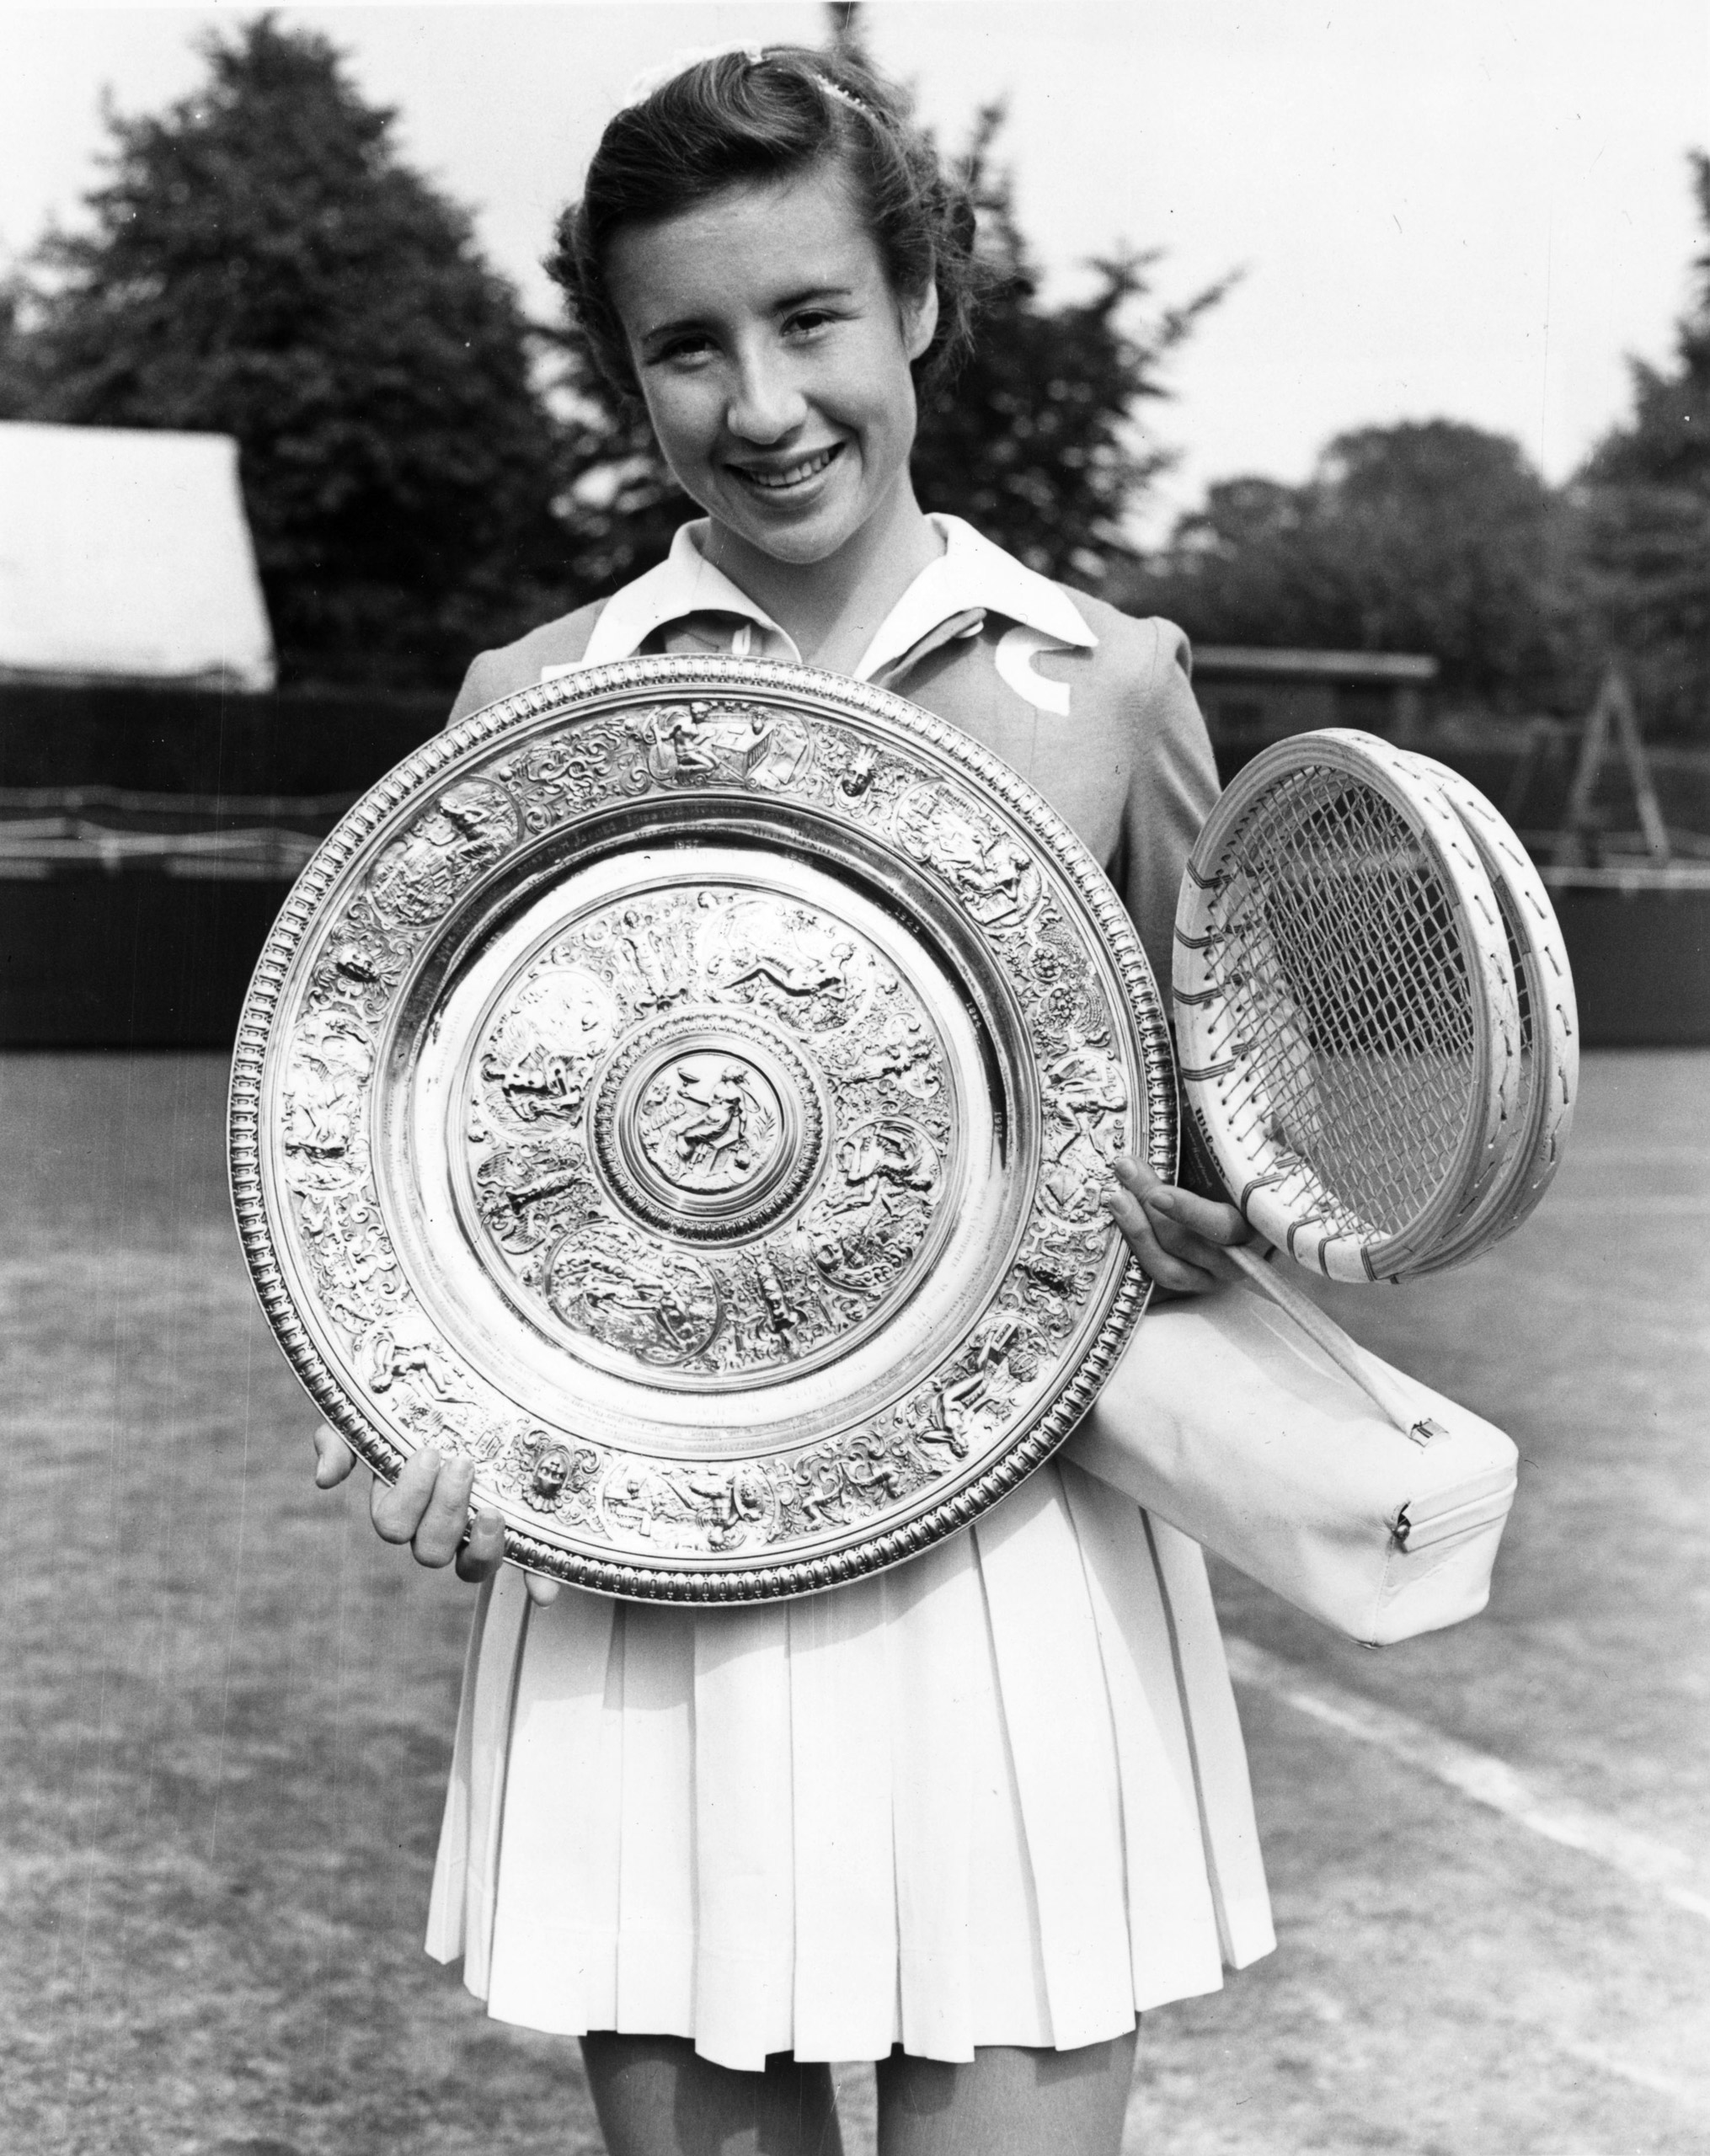 American tennis player Maureen Connolly (Little Mo) with the women's singles trophy after beating Doris Hart in the final at the Wimbledon Lawn Tennis Championships, July 1953.